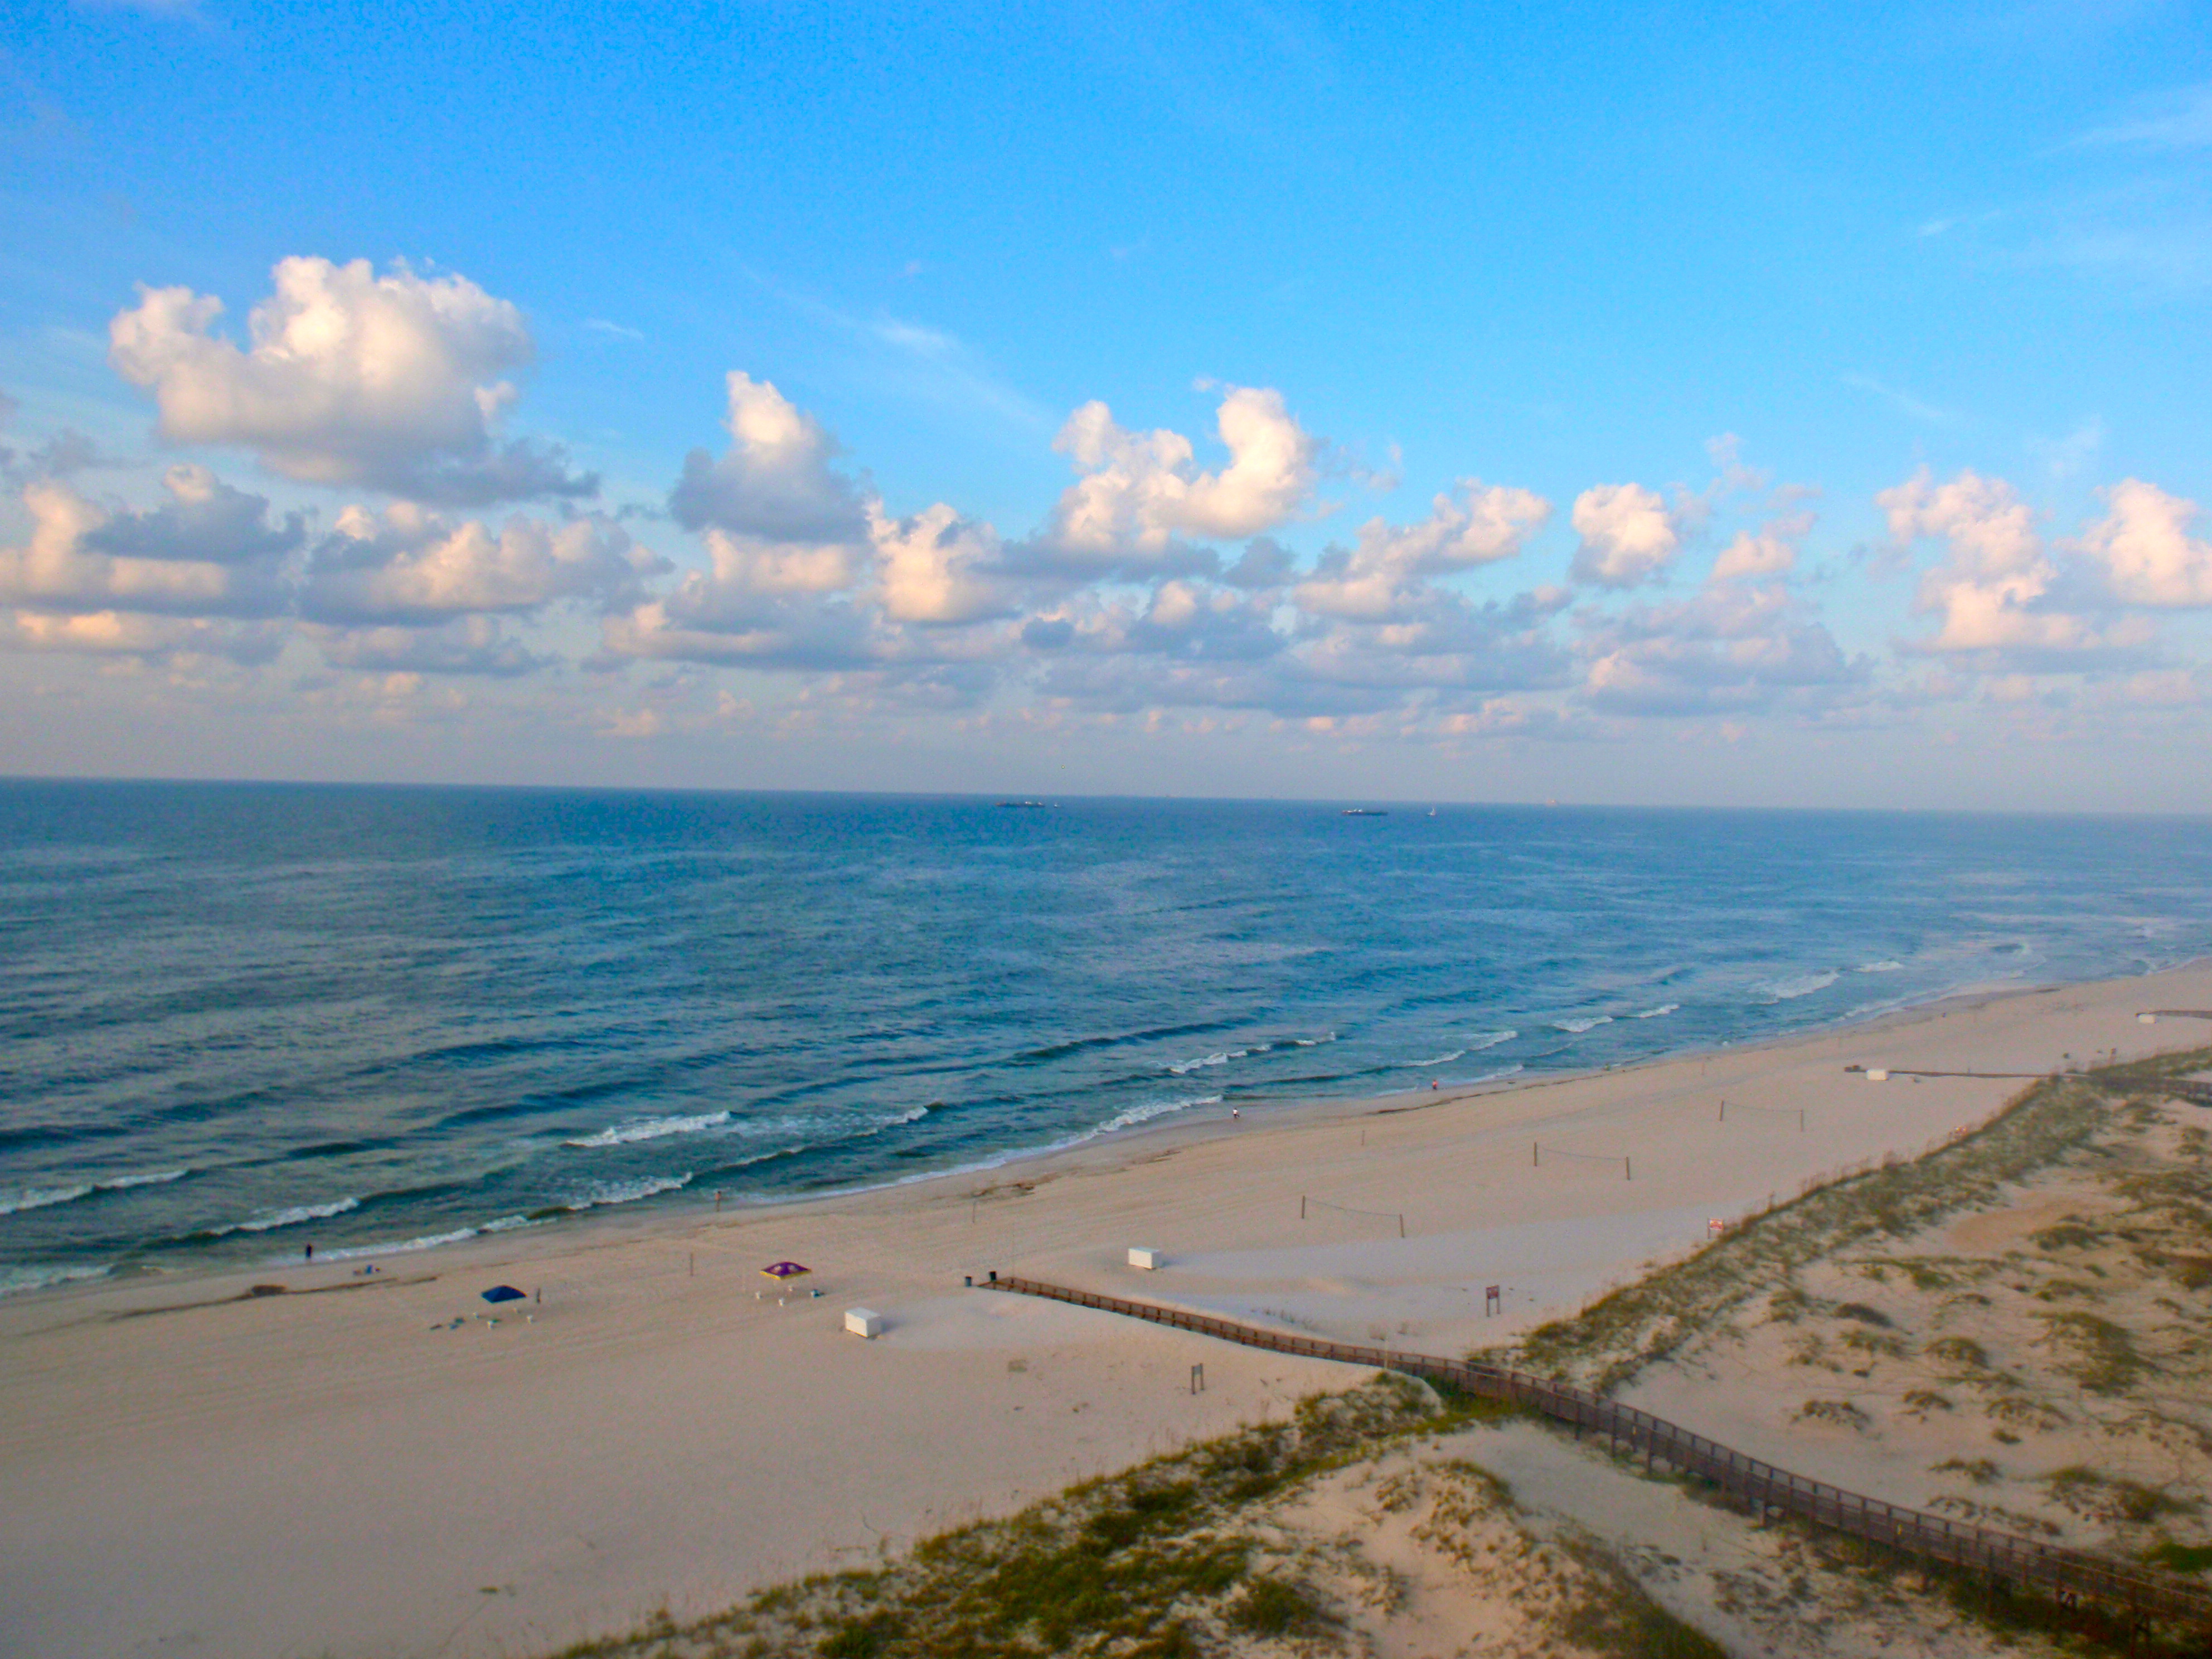 America's Best Secret Golf Vacation Destination – Gulf Shores, Alabama?Golf Road WarriorsEmag PublicationsConnect with us:Sign up for our Newsletter: